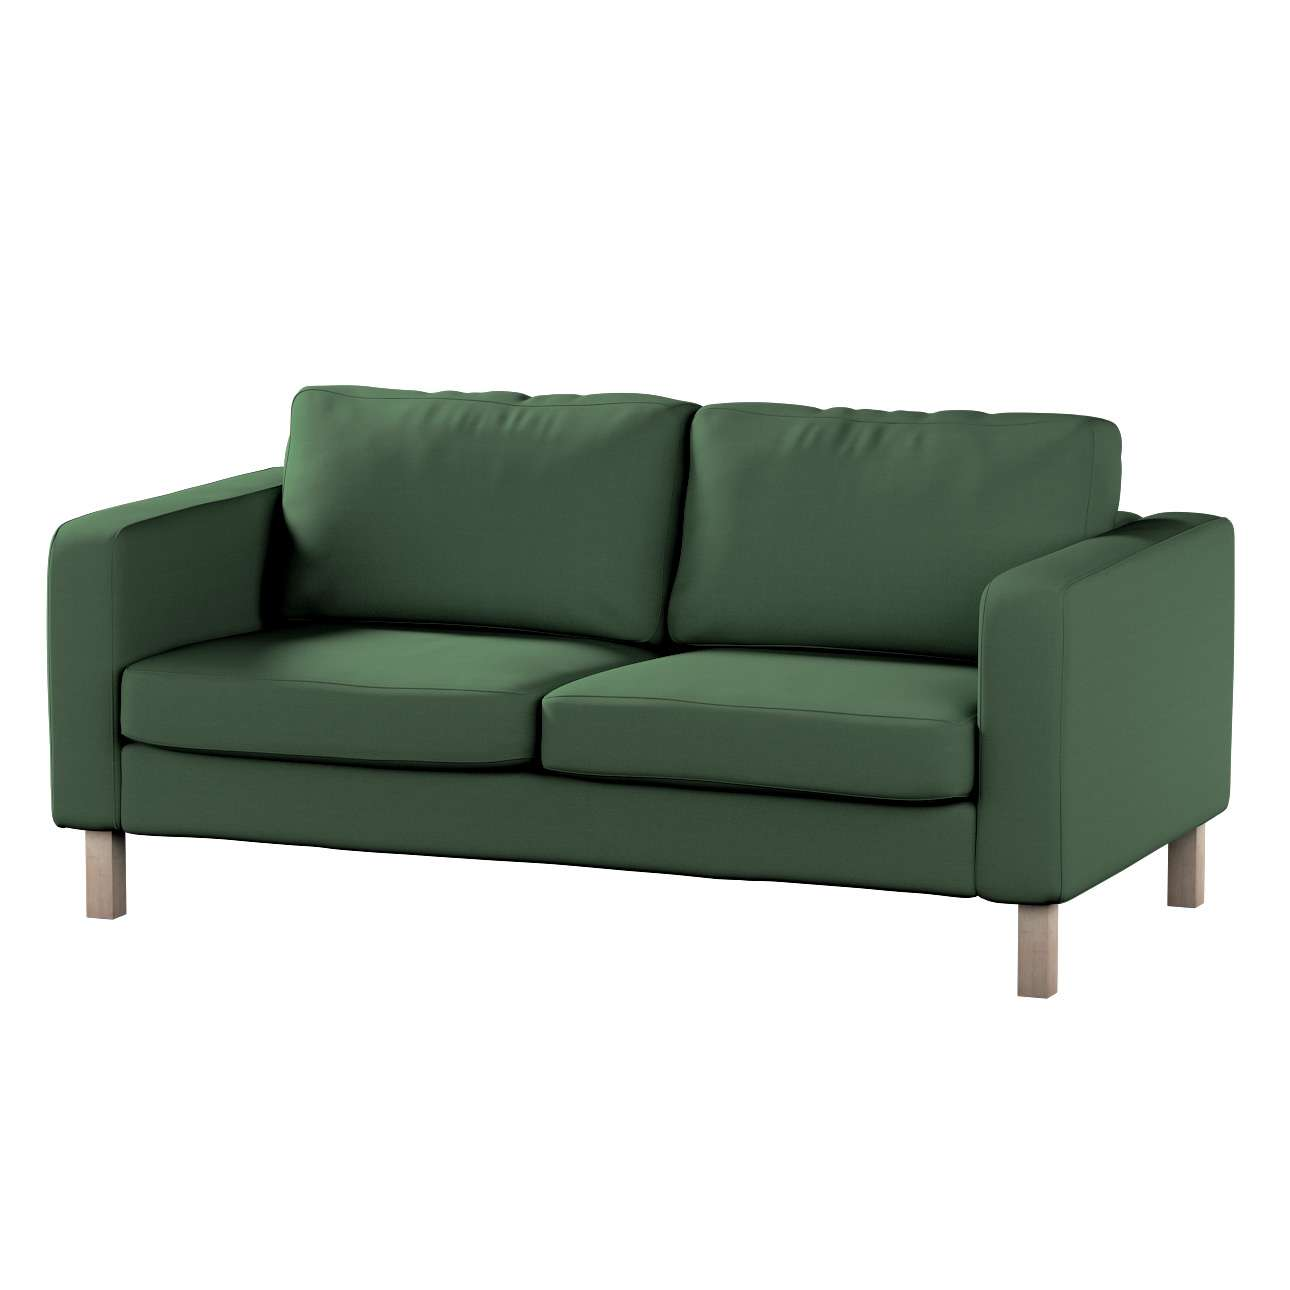 Karlstad 2-seater sofa cover in collection Panama Cotton, fabric: 702-06